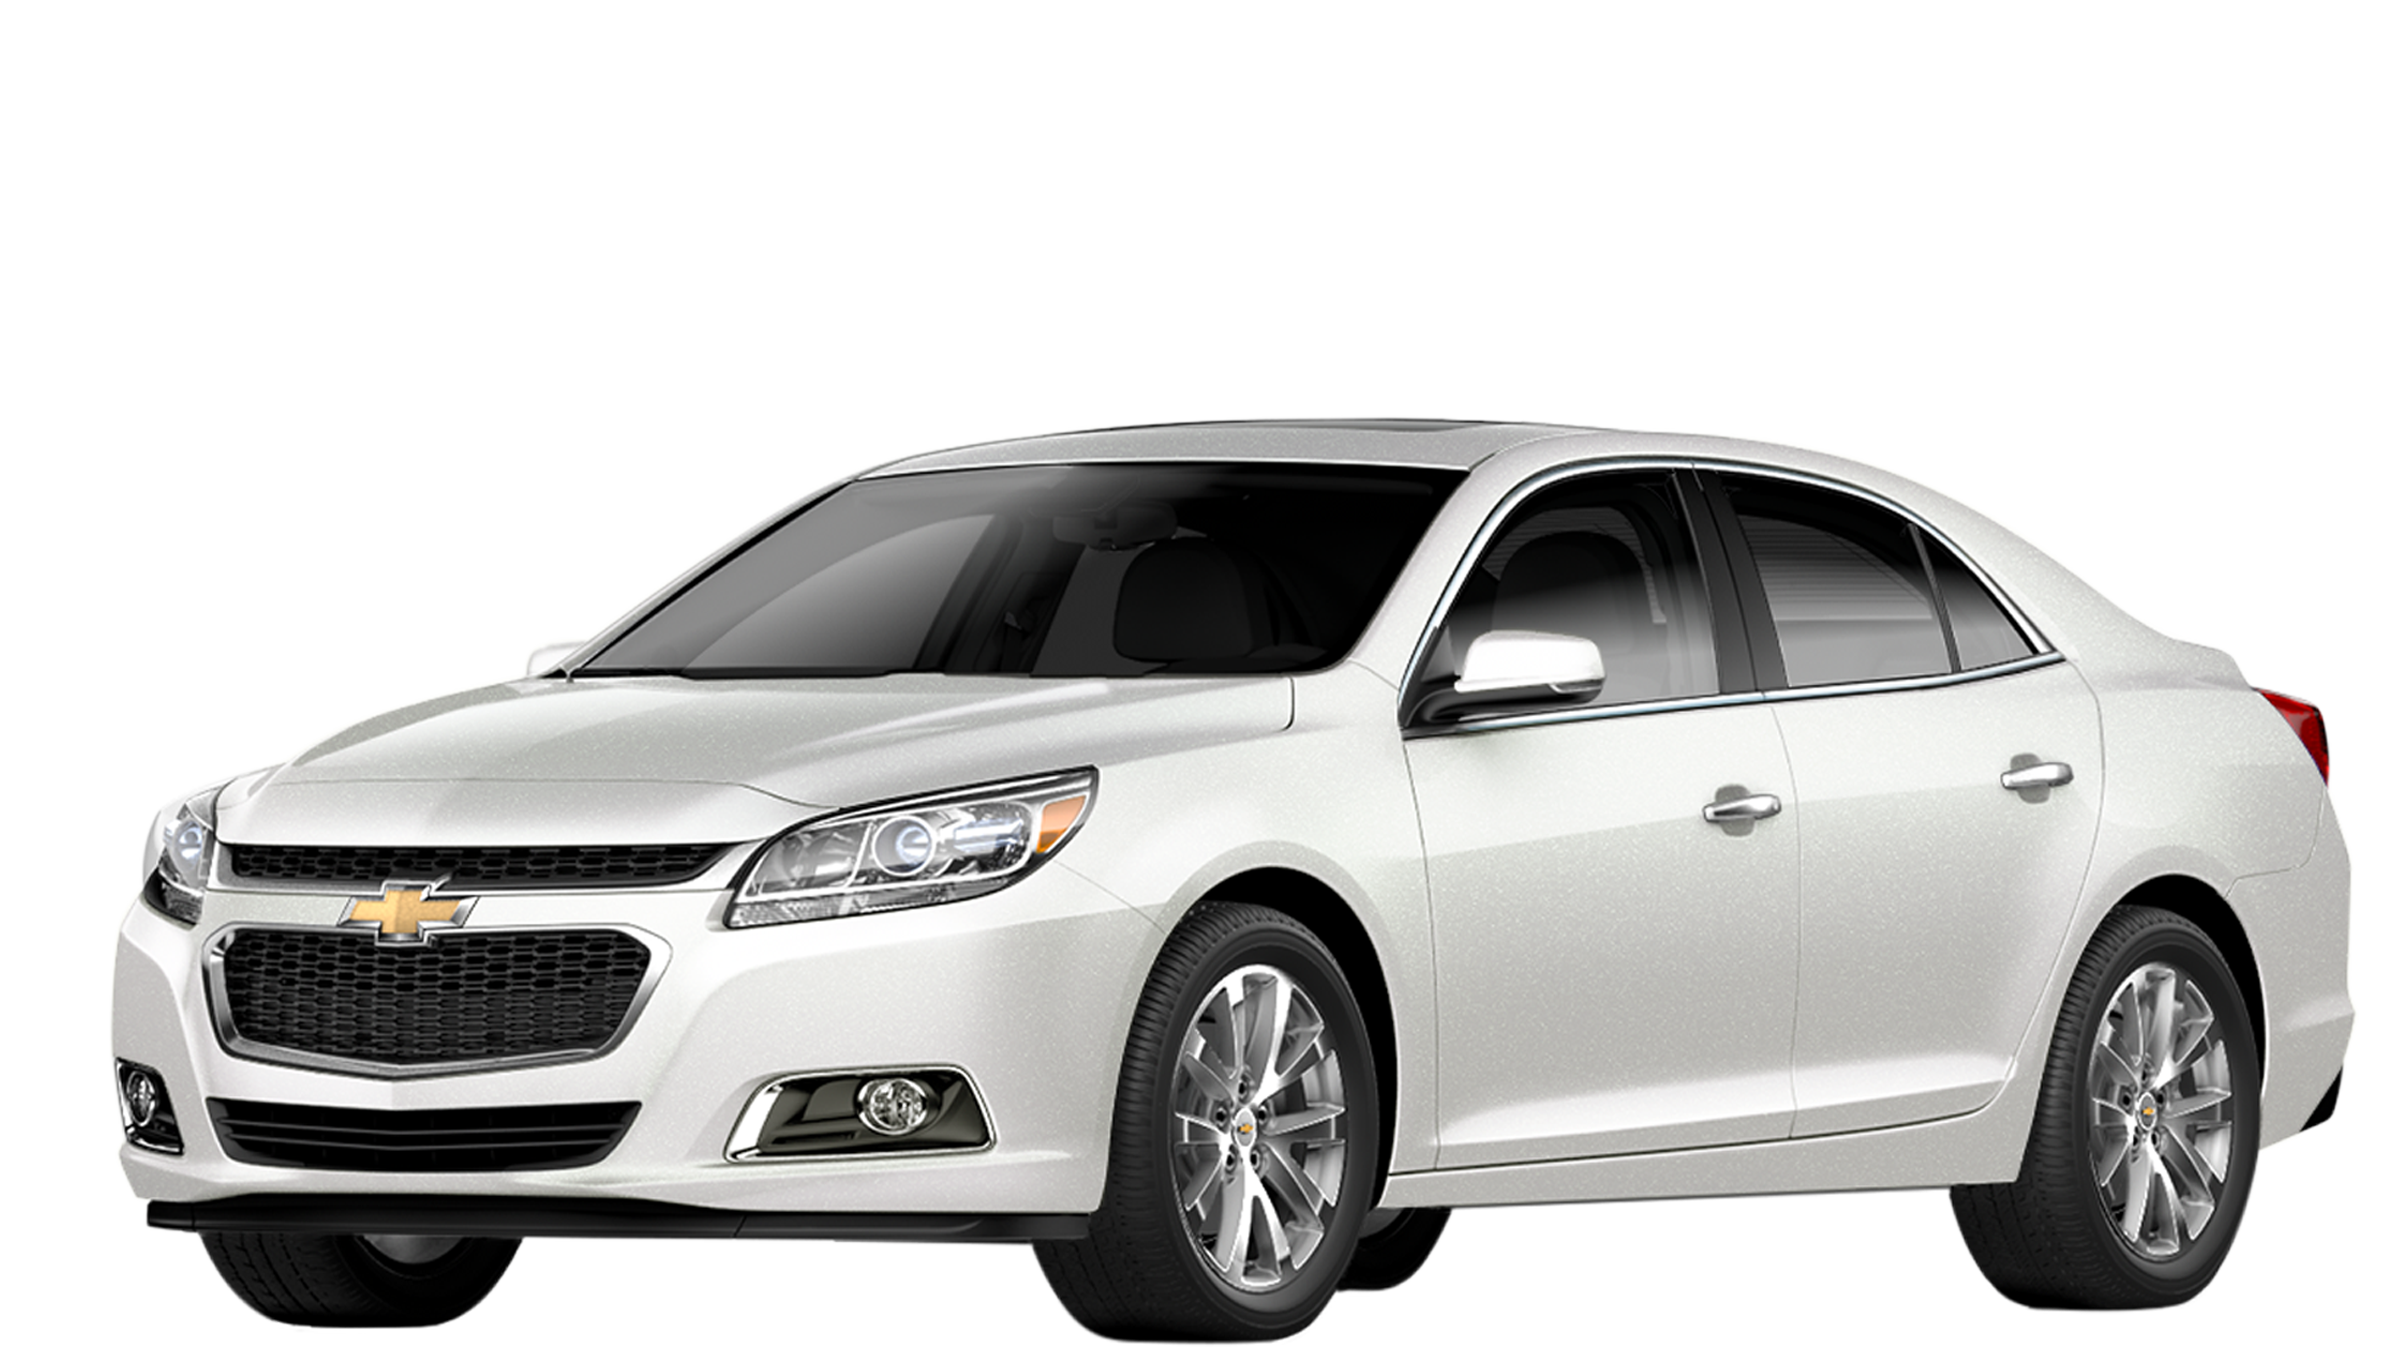 2016 chevy malibu png. Master chevrolet cadillac for